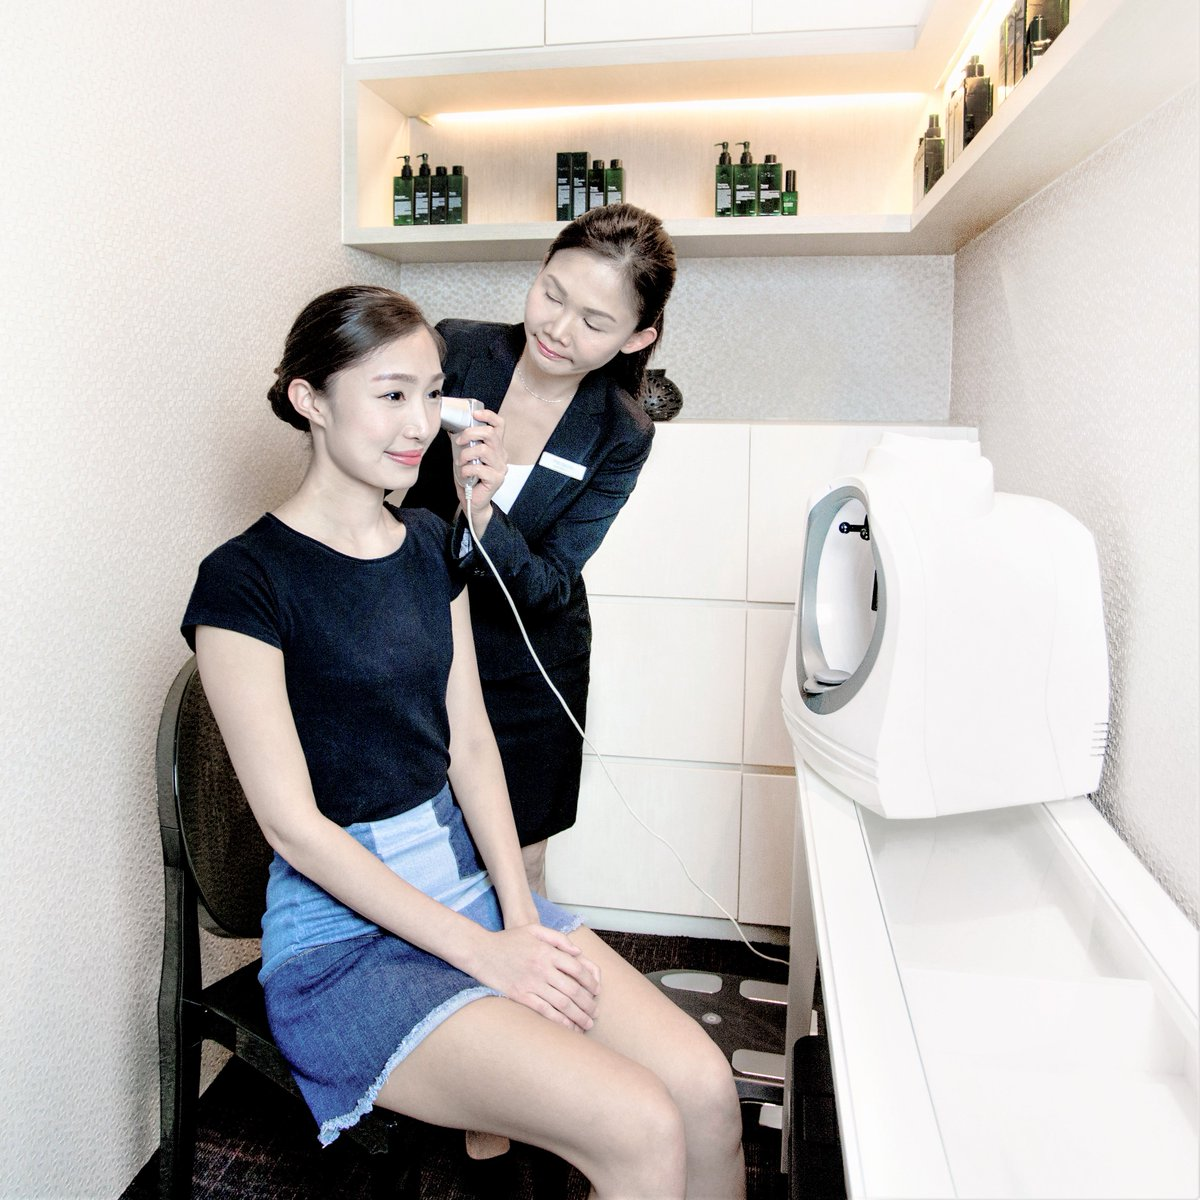 Head down to DrSpa® TANGS @ Tang Plaza, Level 4 and enjoy a complimentary Skin Analysis! #DrSpa #Skinanalysis https://t.co/r22NRkhbW4